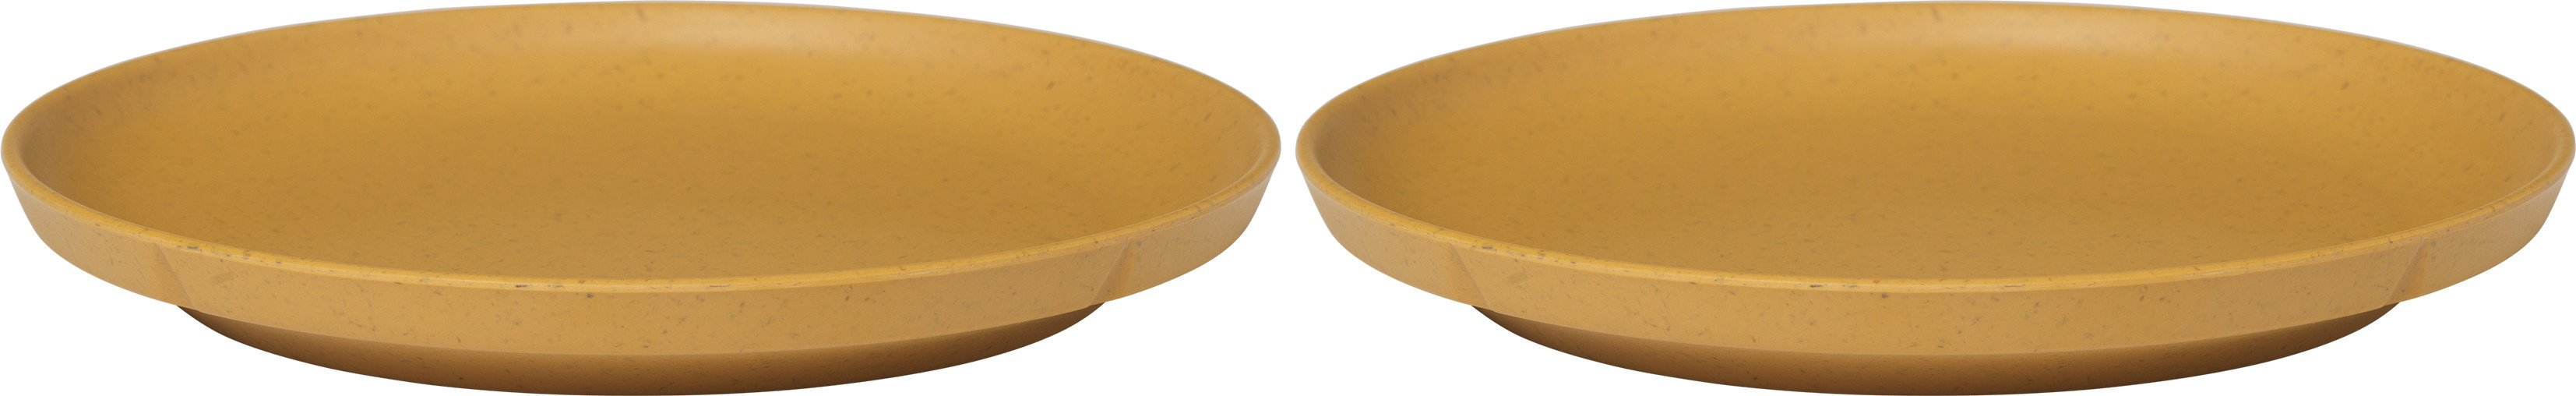 Grand Cru Take Plate 2 pcs. Ø19.5 cm Ochre, Rosendahl